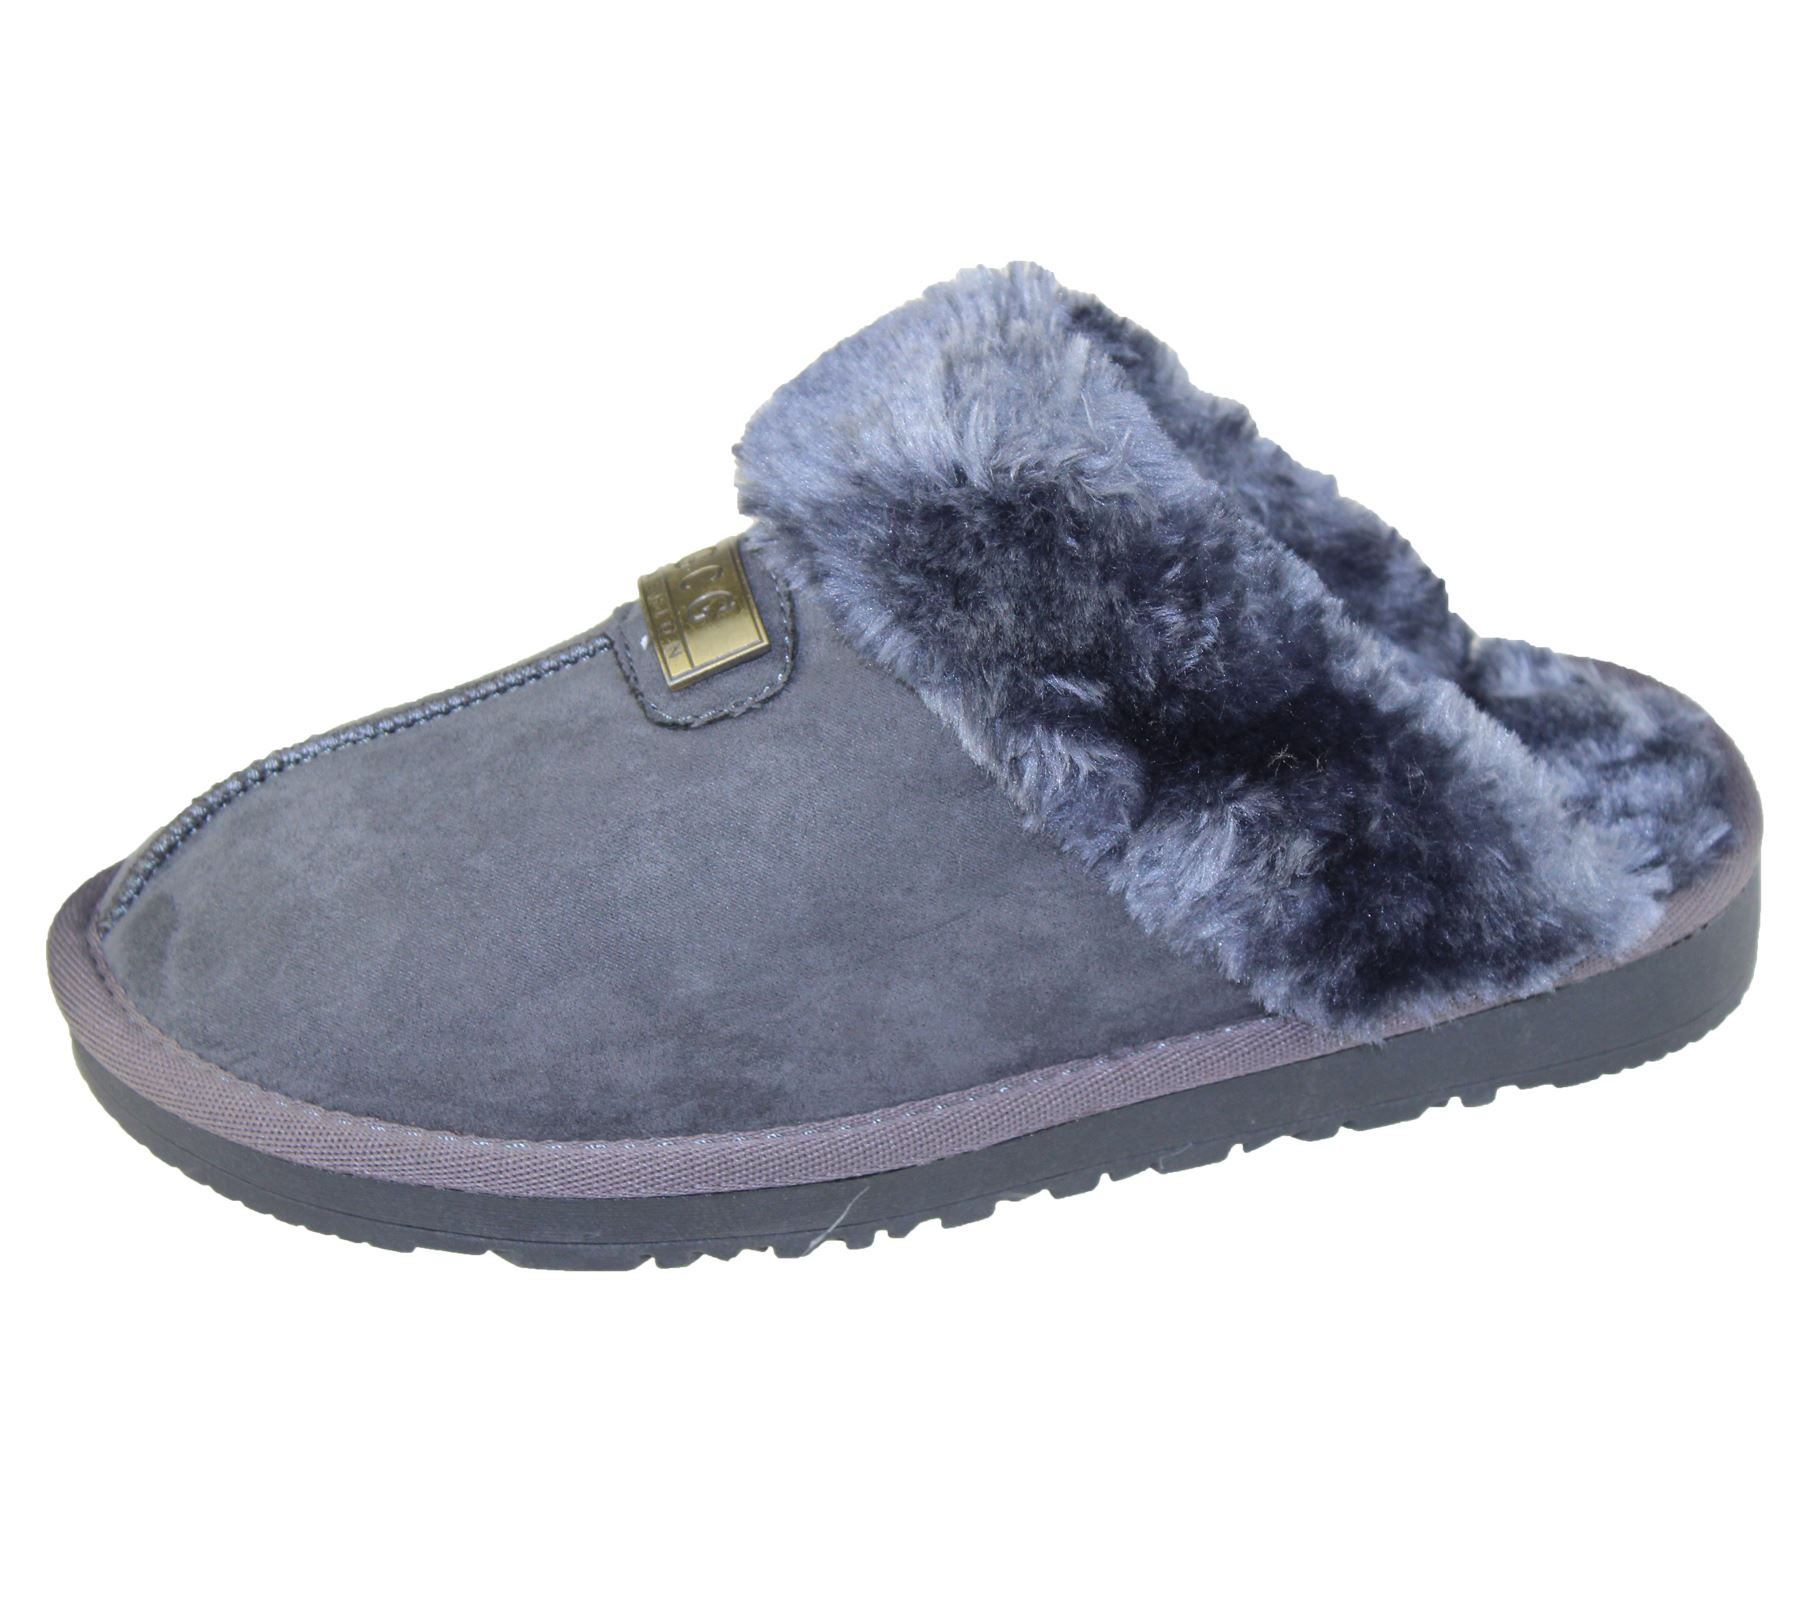 Womens-Fur-Lined-Slippers-Ladies-Mules-Non-Slip-Rubber-Sole-Shoes miniatura 37